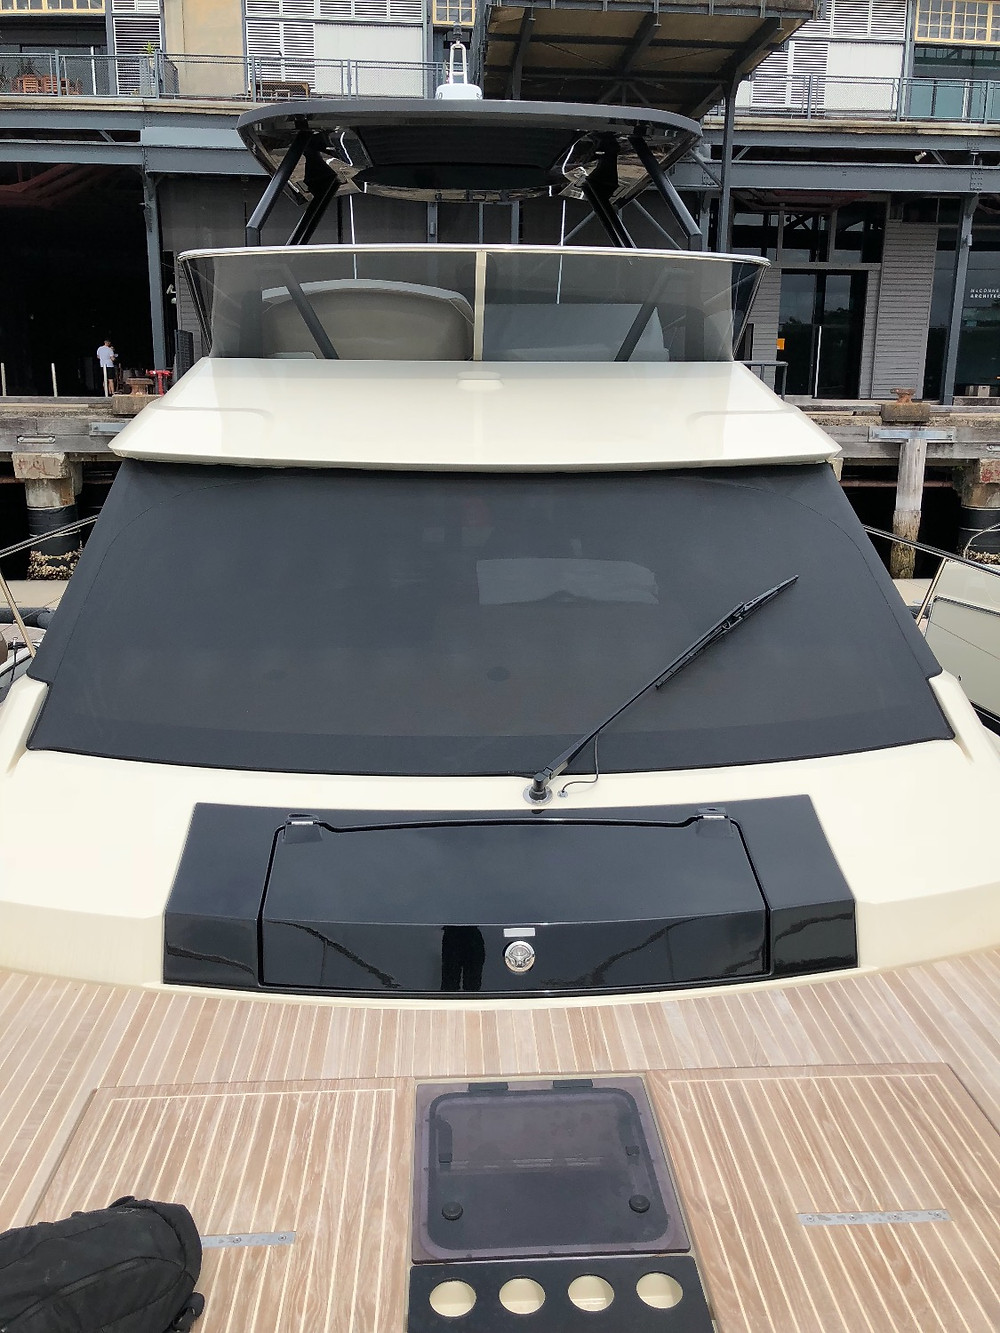 Mote Carlo Windscreen Covers - Marine Trimming Sydney